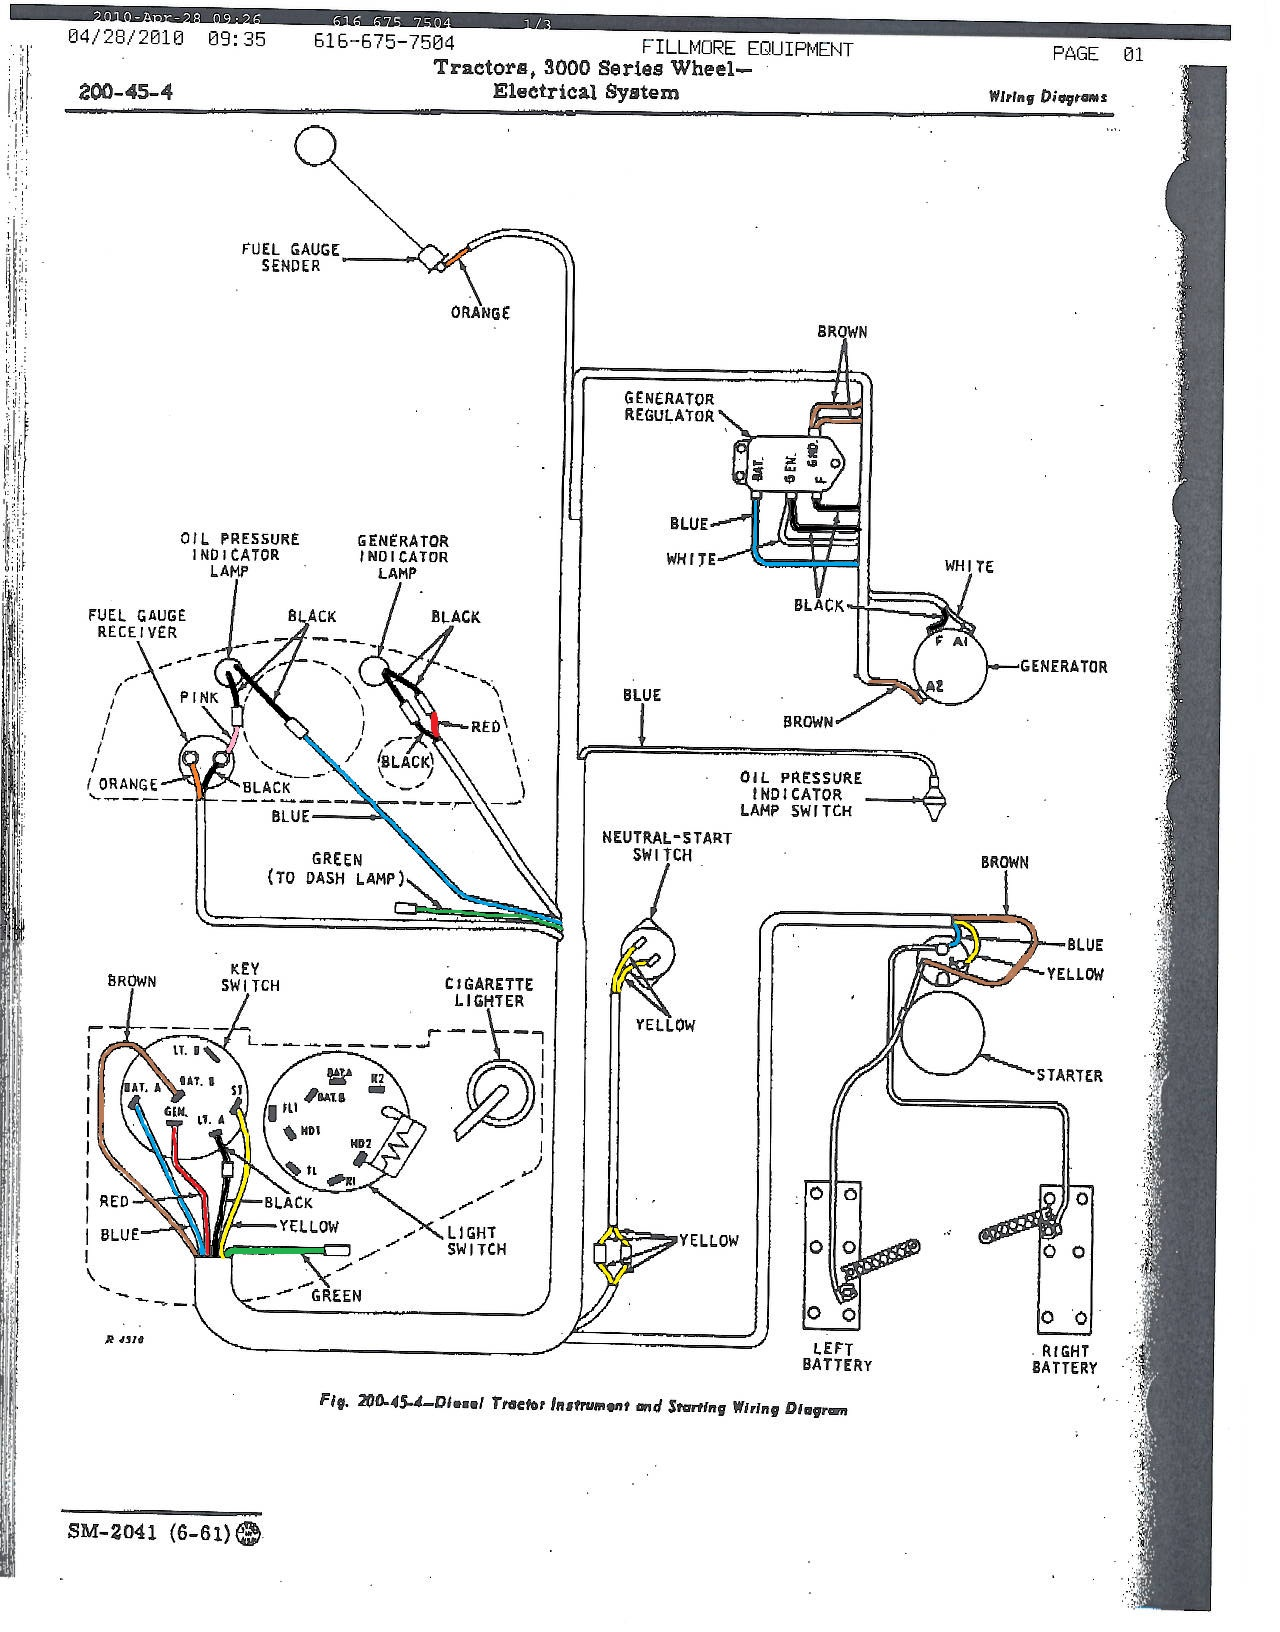 john-deere-3010-starter-switch-wiring-diagram-12 Jd Wiring Diagram on